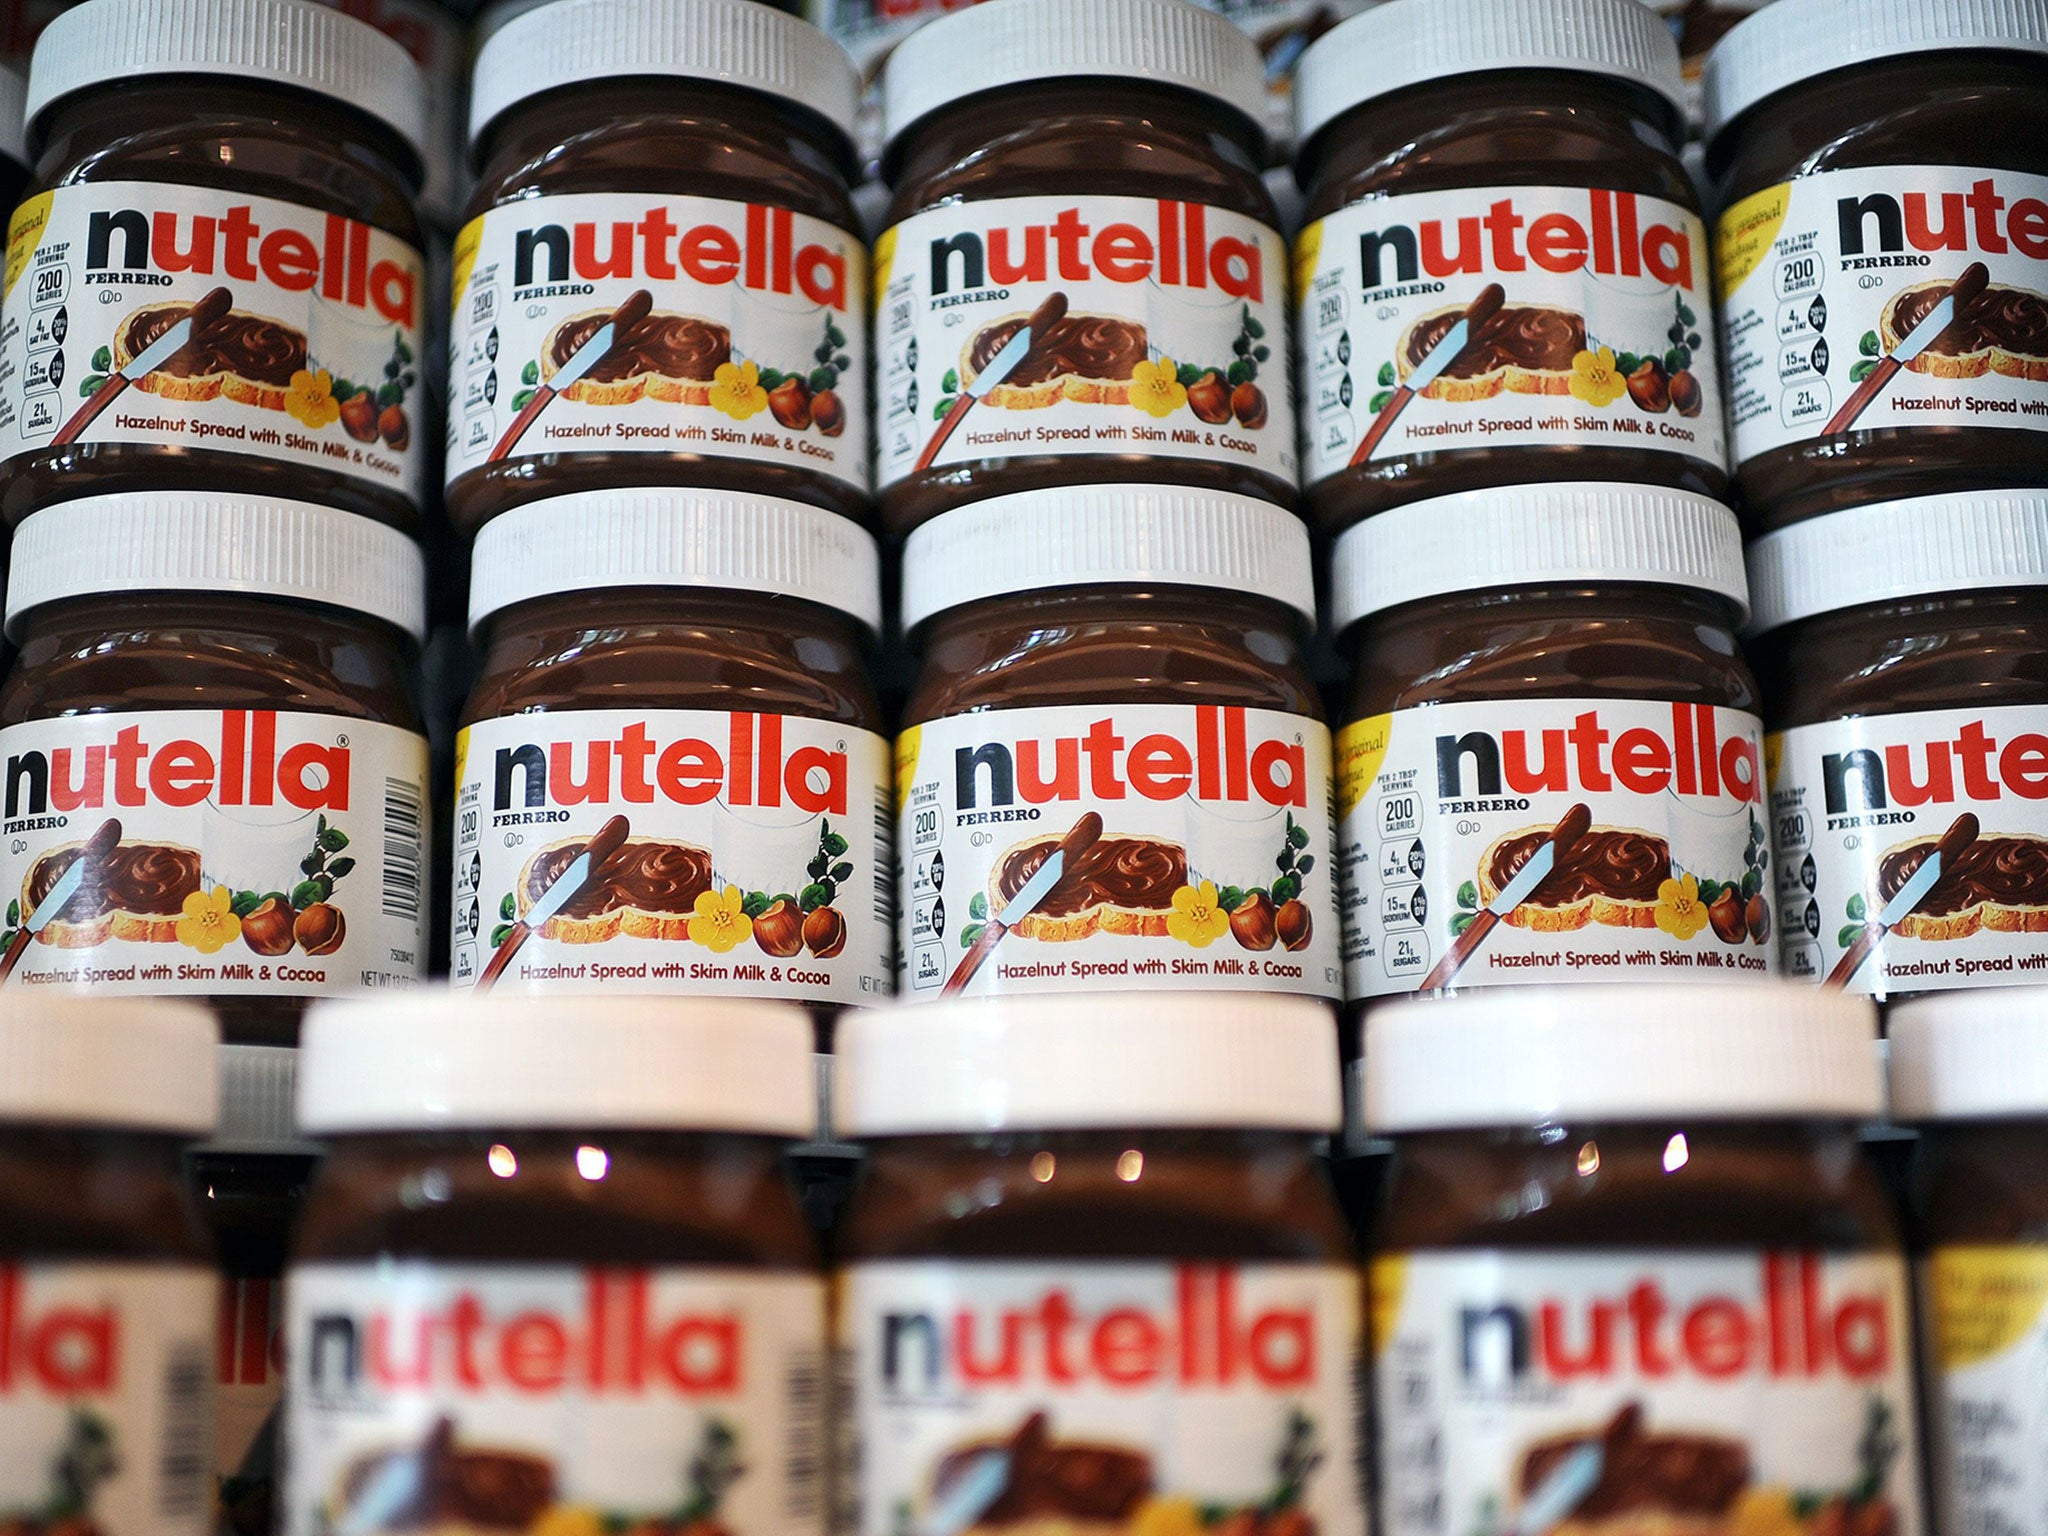 Nutella is being removed from supermarkets